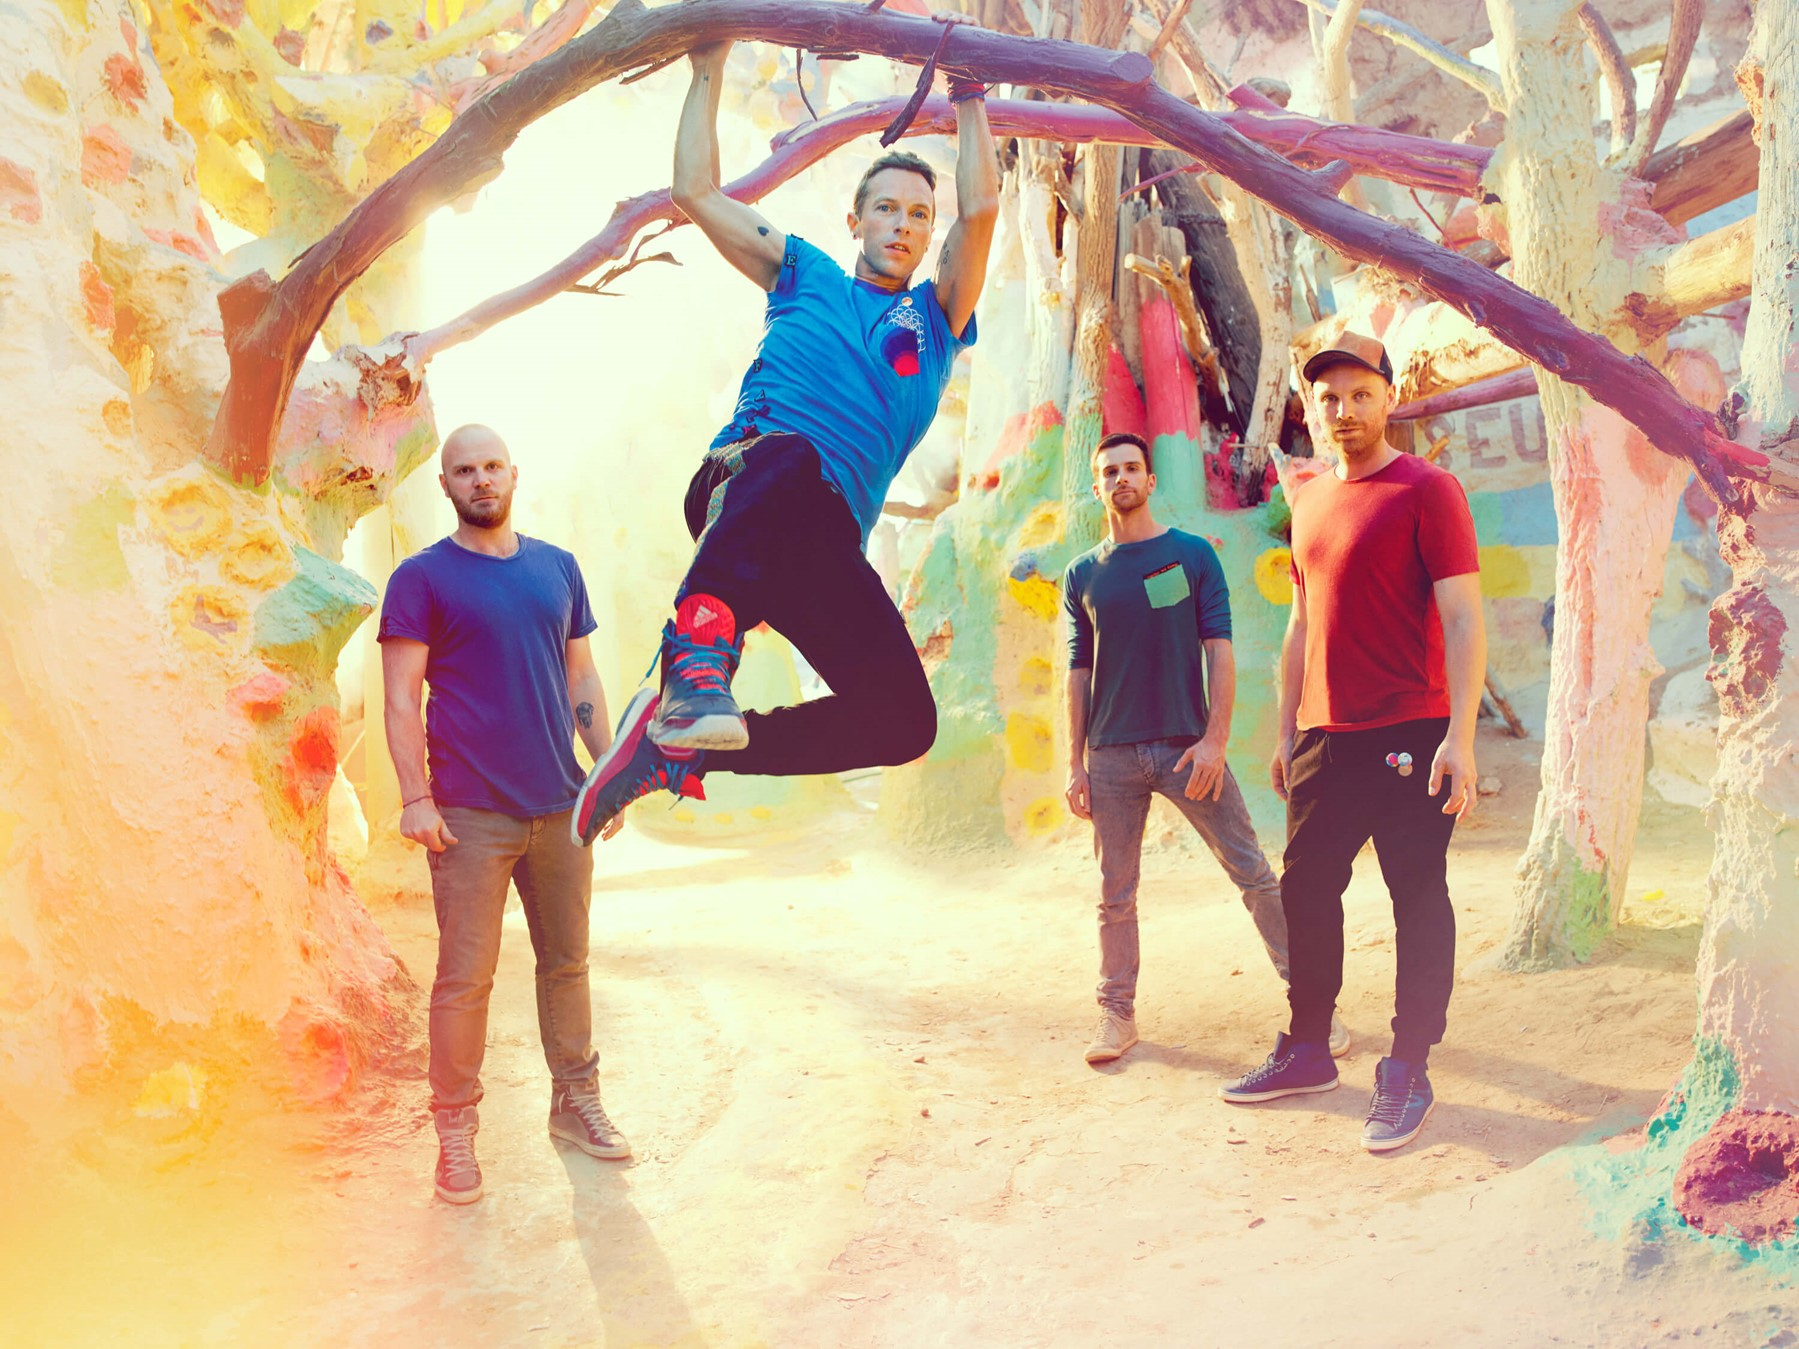 coldplay-a-head-full-of-dreams_image-1